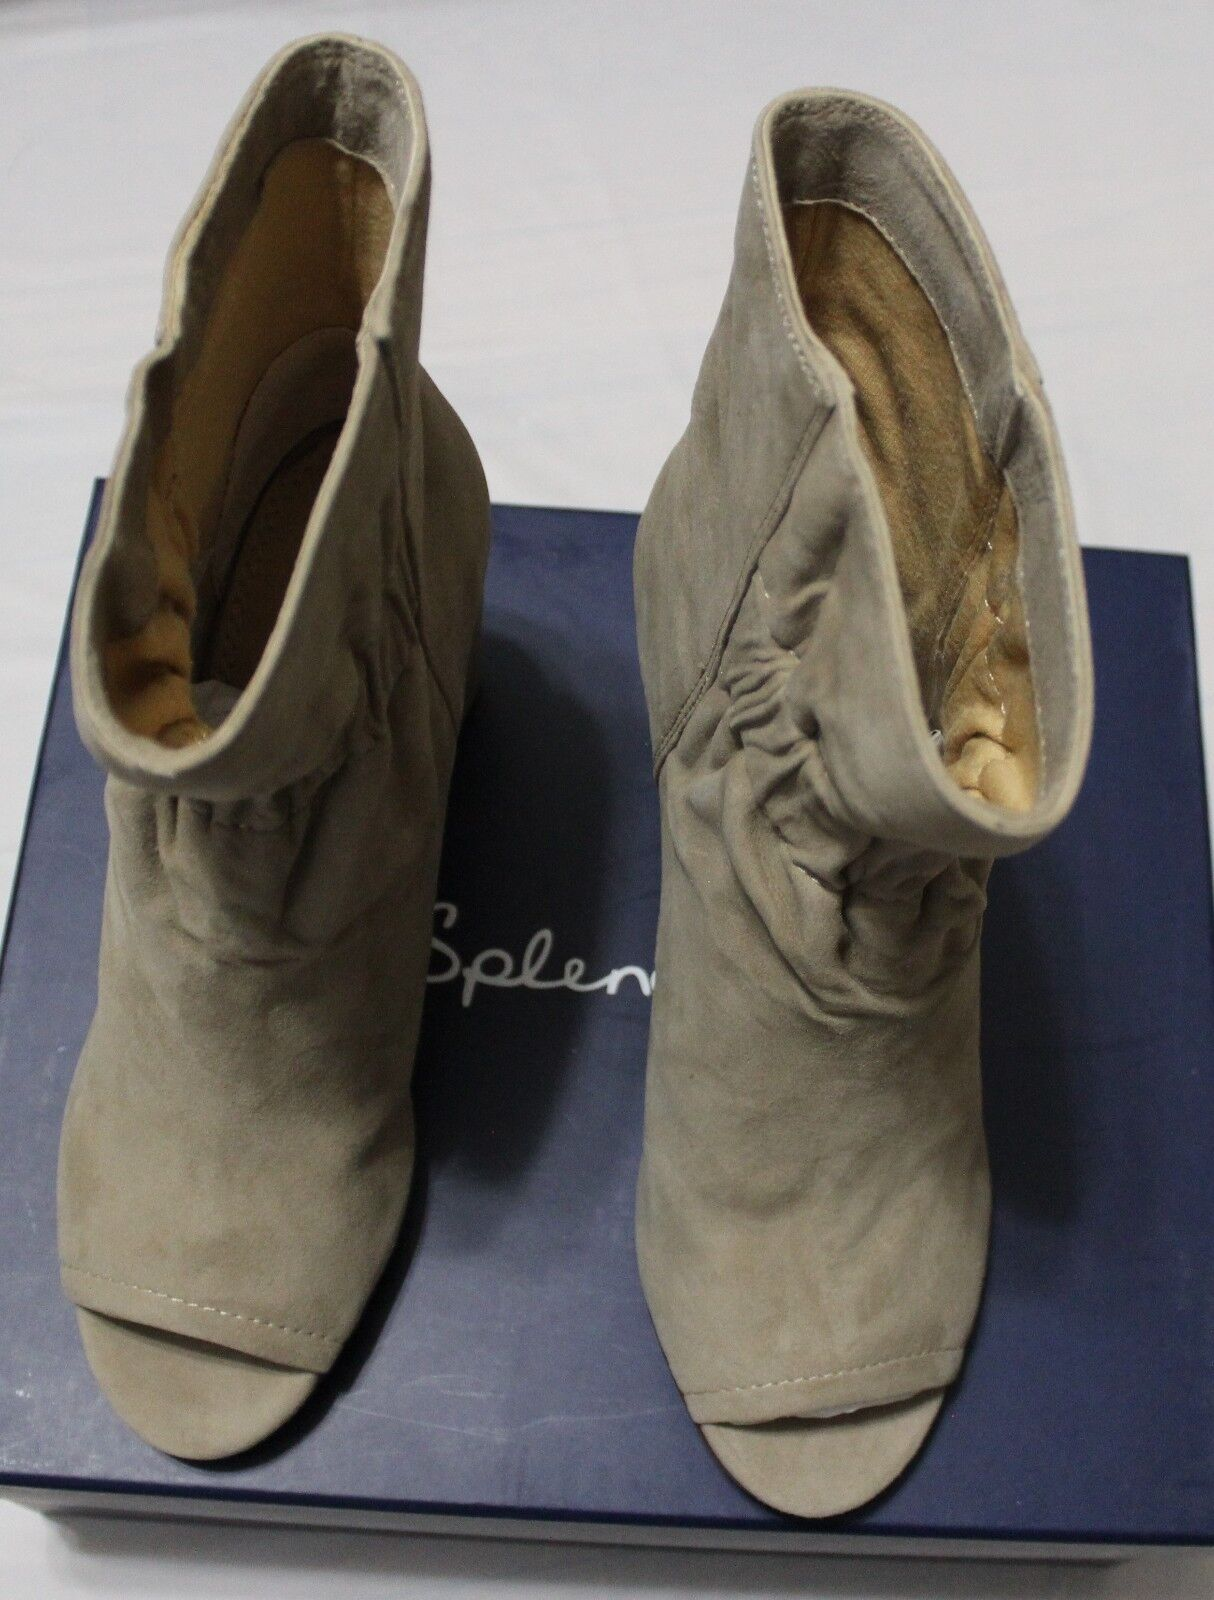 168 SPLENDID RAYNA TAUPE SUEDE ANKLE BOOTIE US 7M